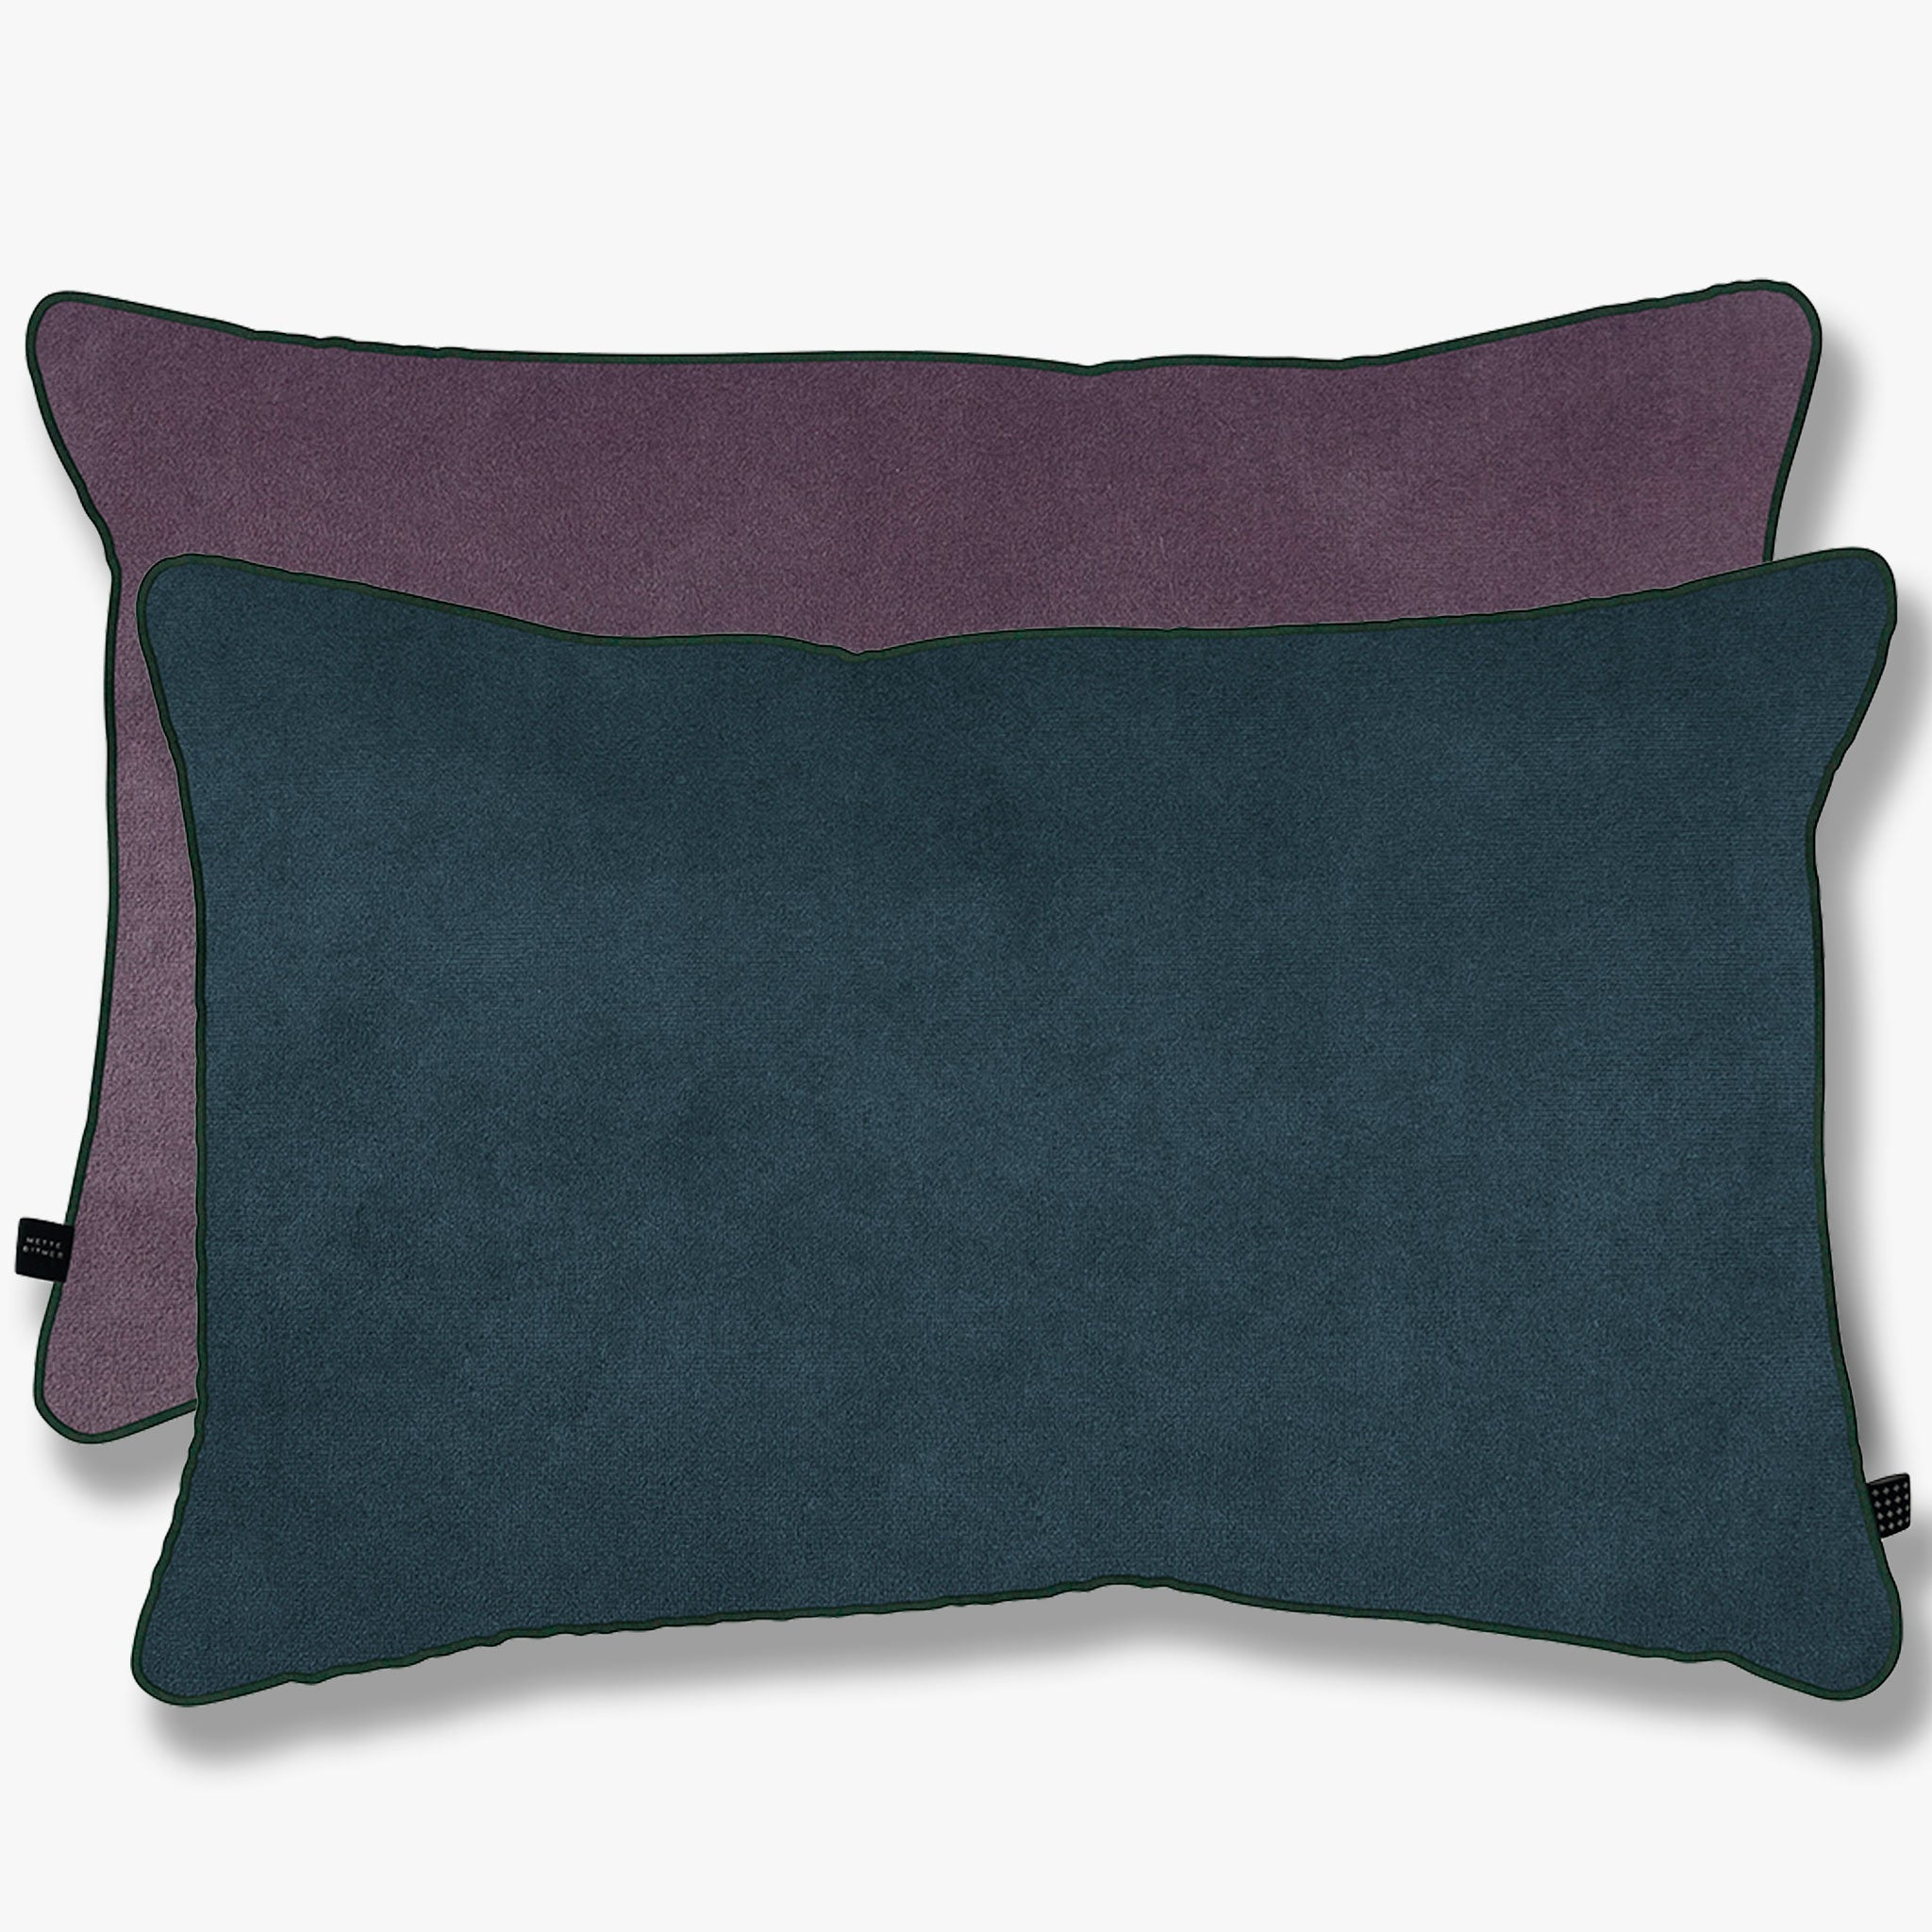 BLOCK Pude, dust blue/lilac